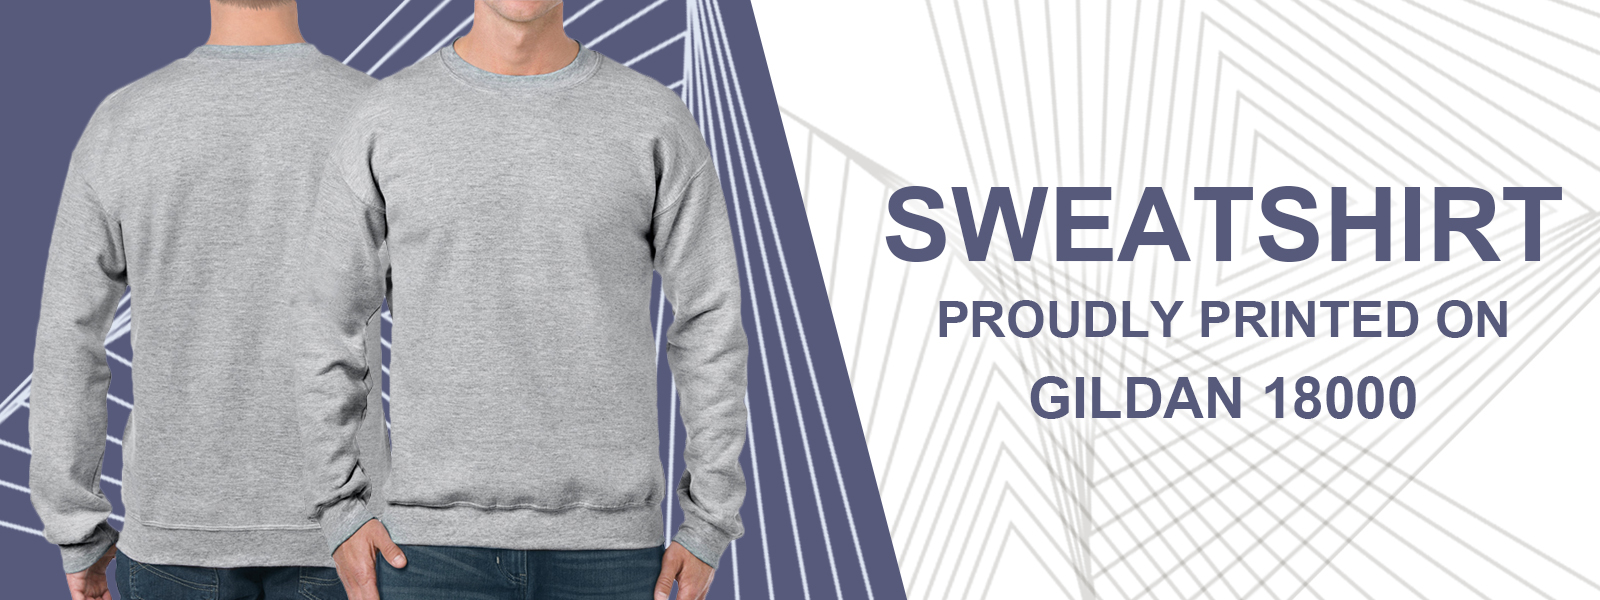 teespedia-banner-sweater-category11.jpg